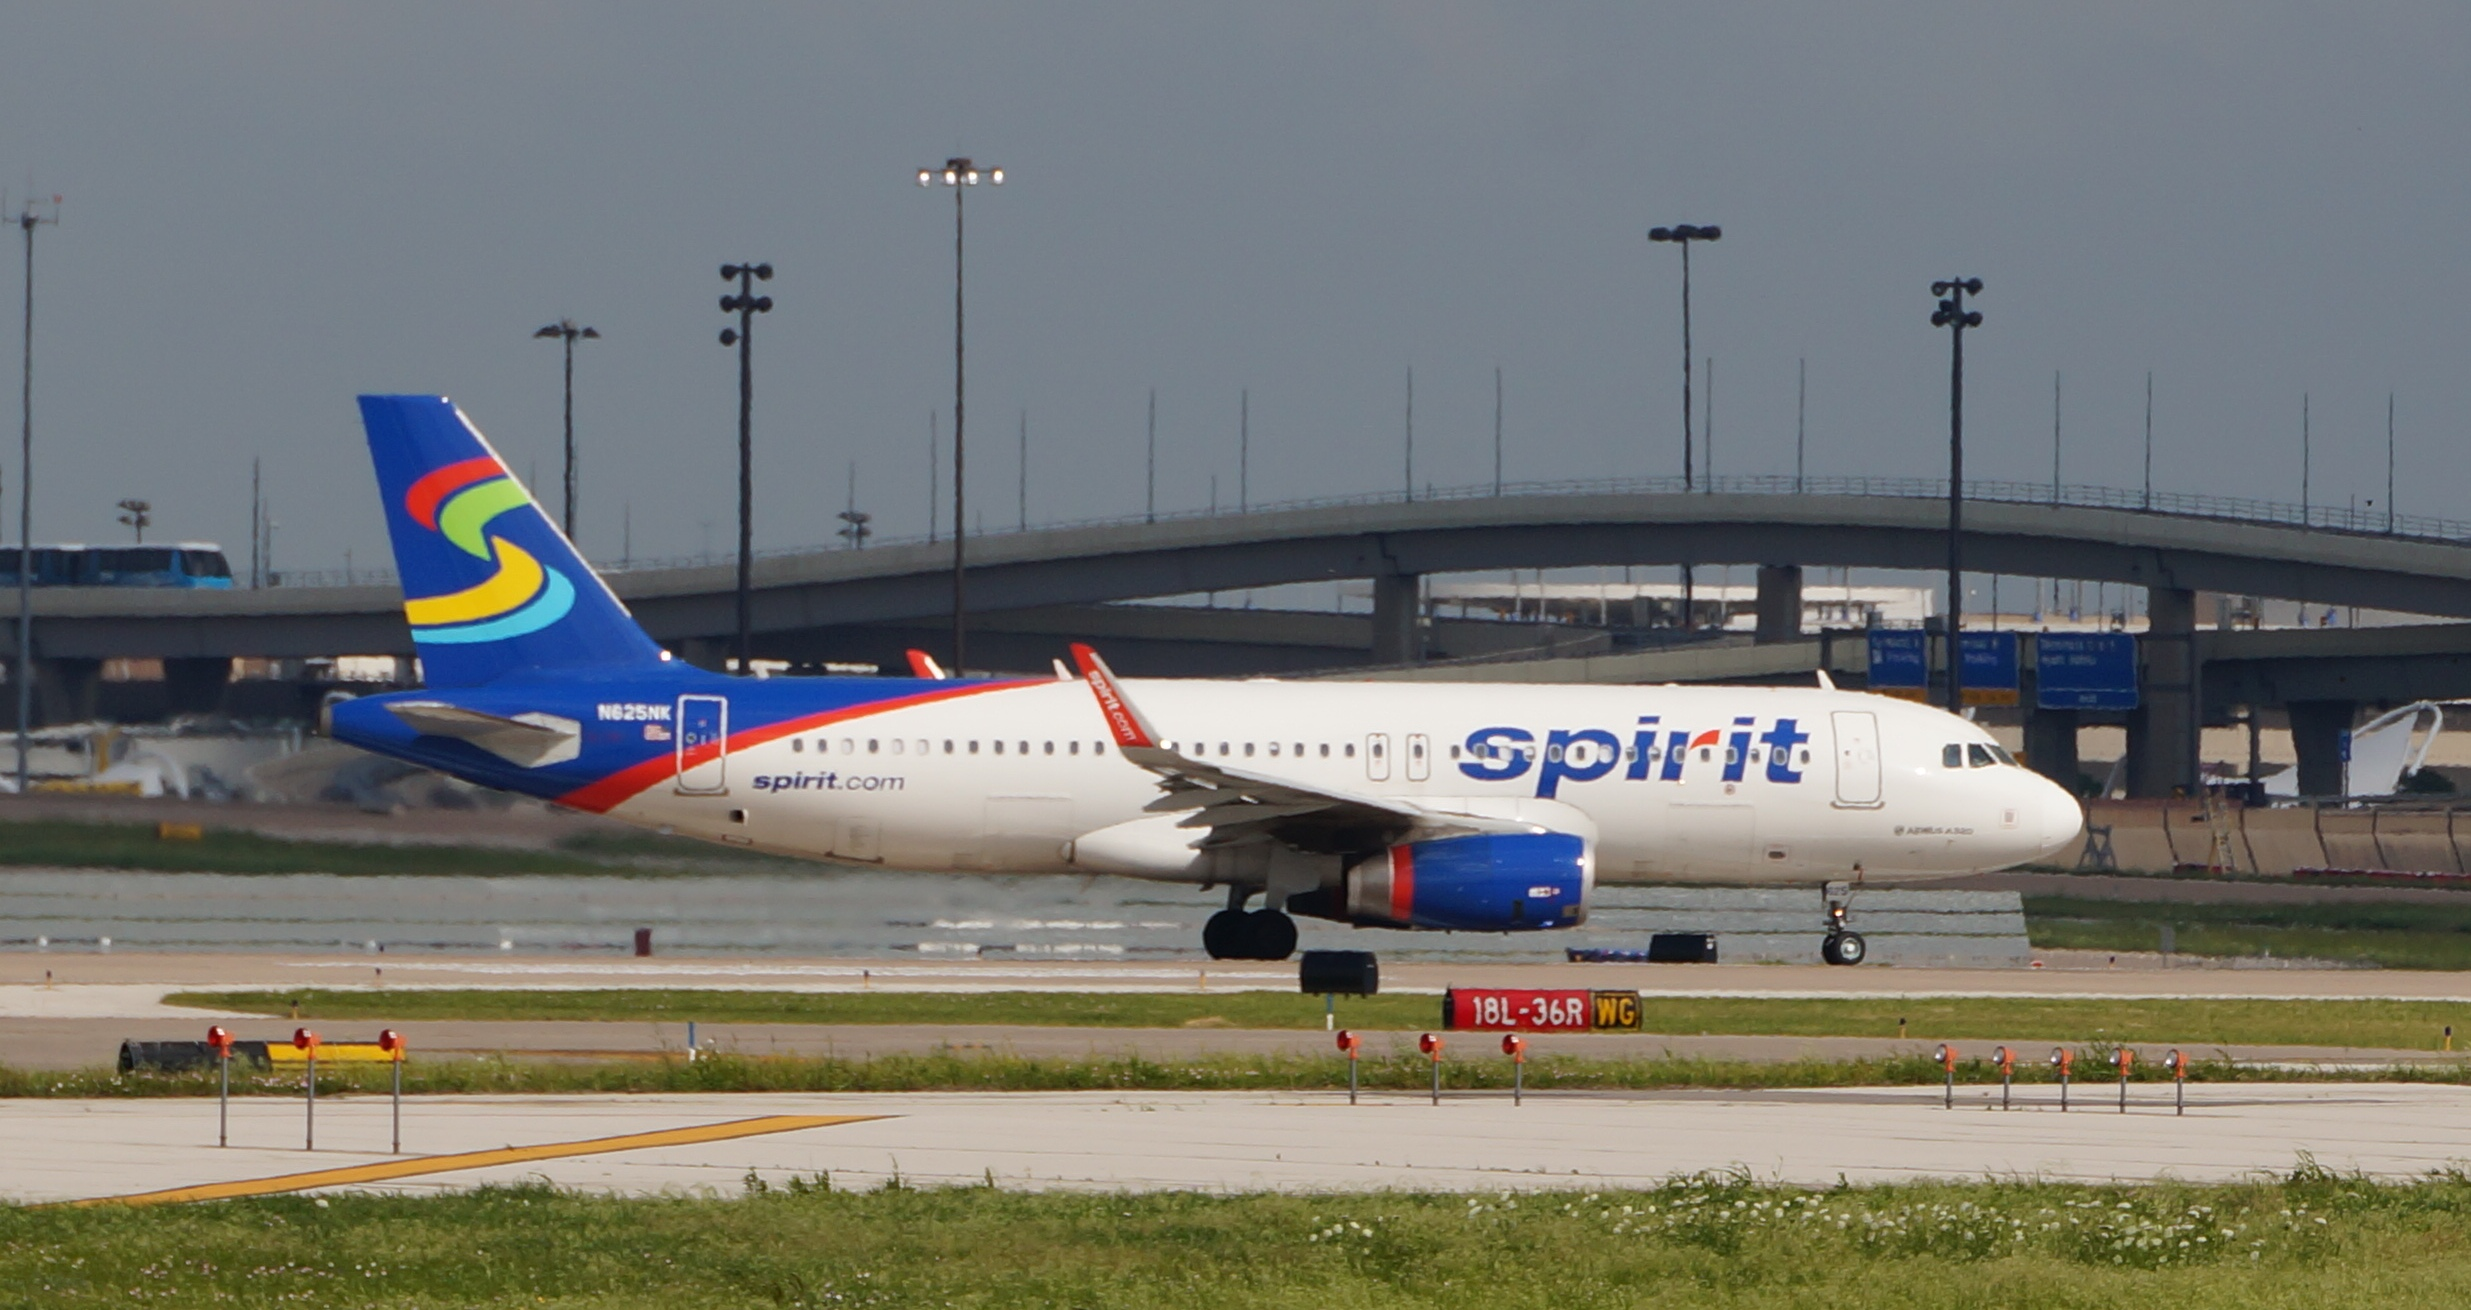 Image gallery nk airline for Spirit airlines one way